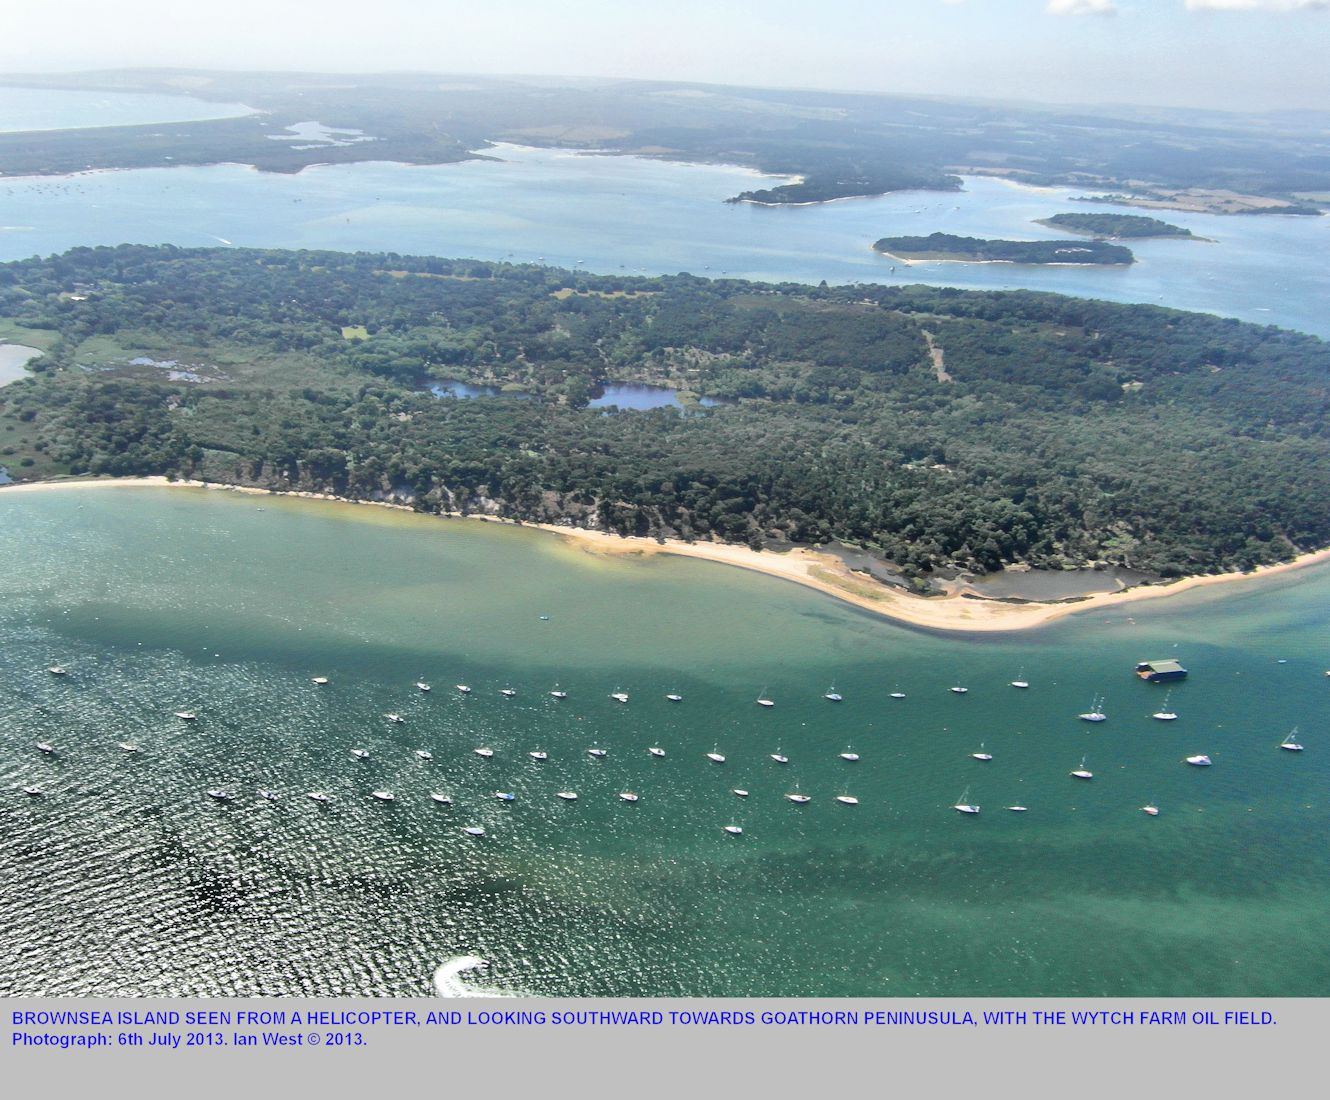 A general view of most of Brownsea Island, Poole Harbour, Dorset, as seen from a helicopter looking southward, 6th July 2013, unlabelled version